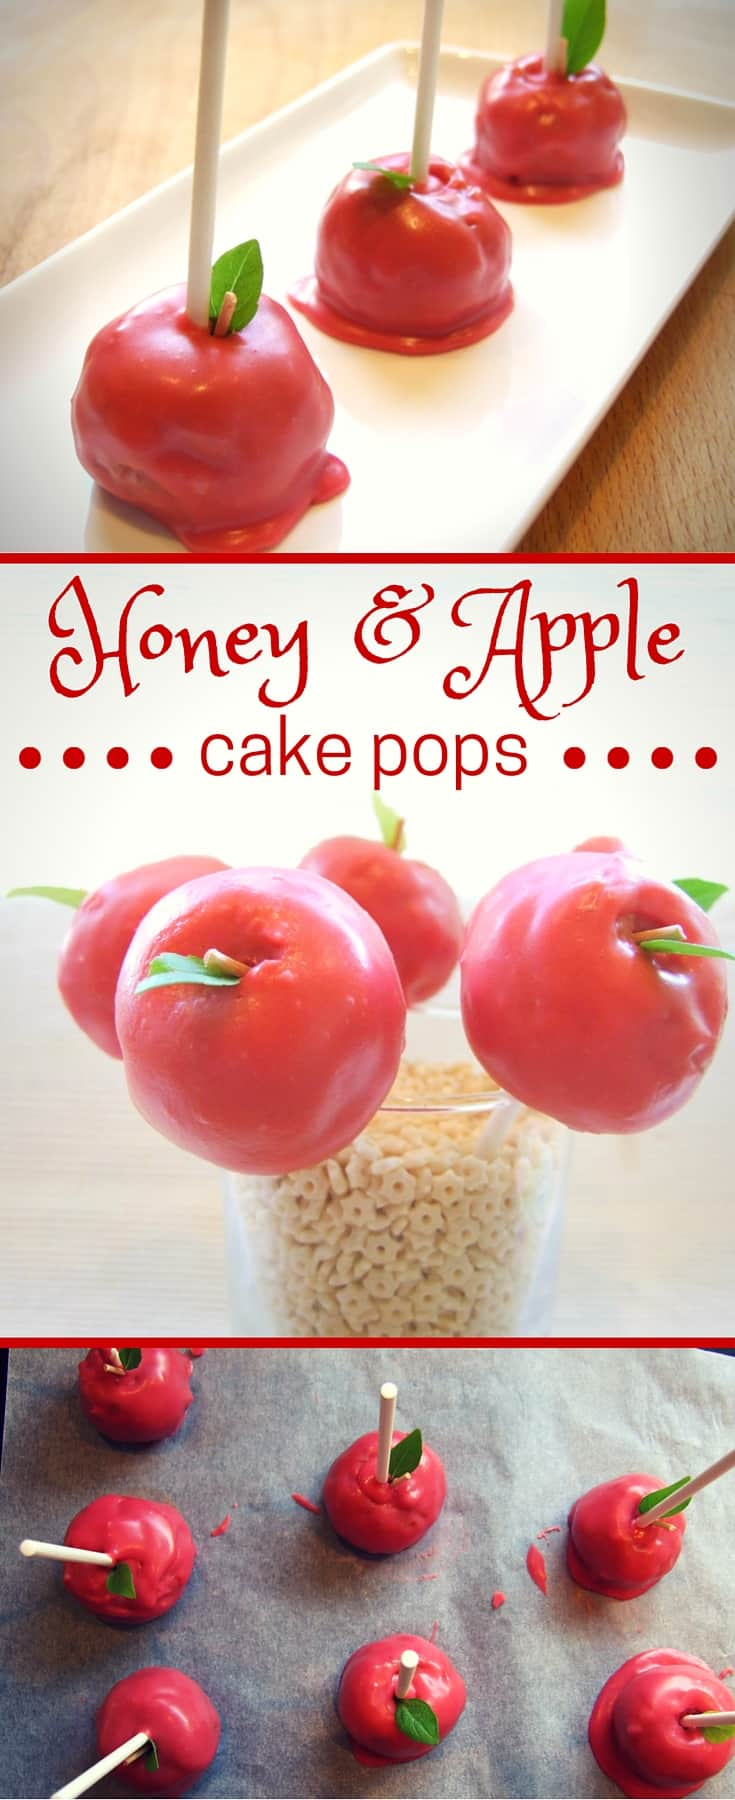 Easy Apple Cake Recipe For Rosh Hashanah